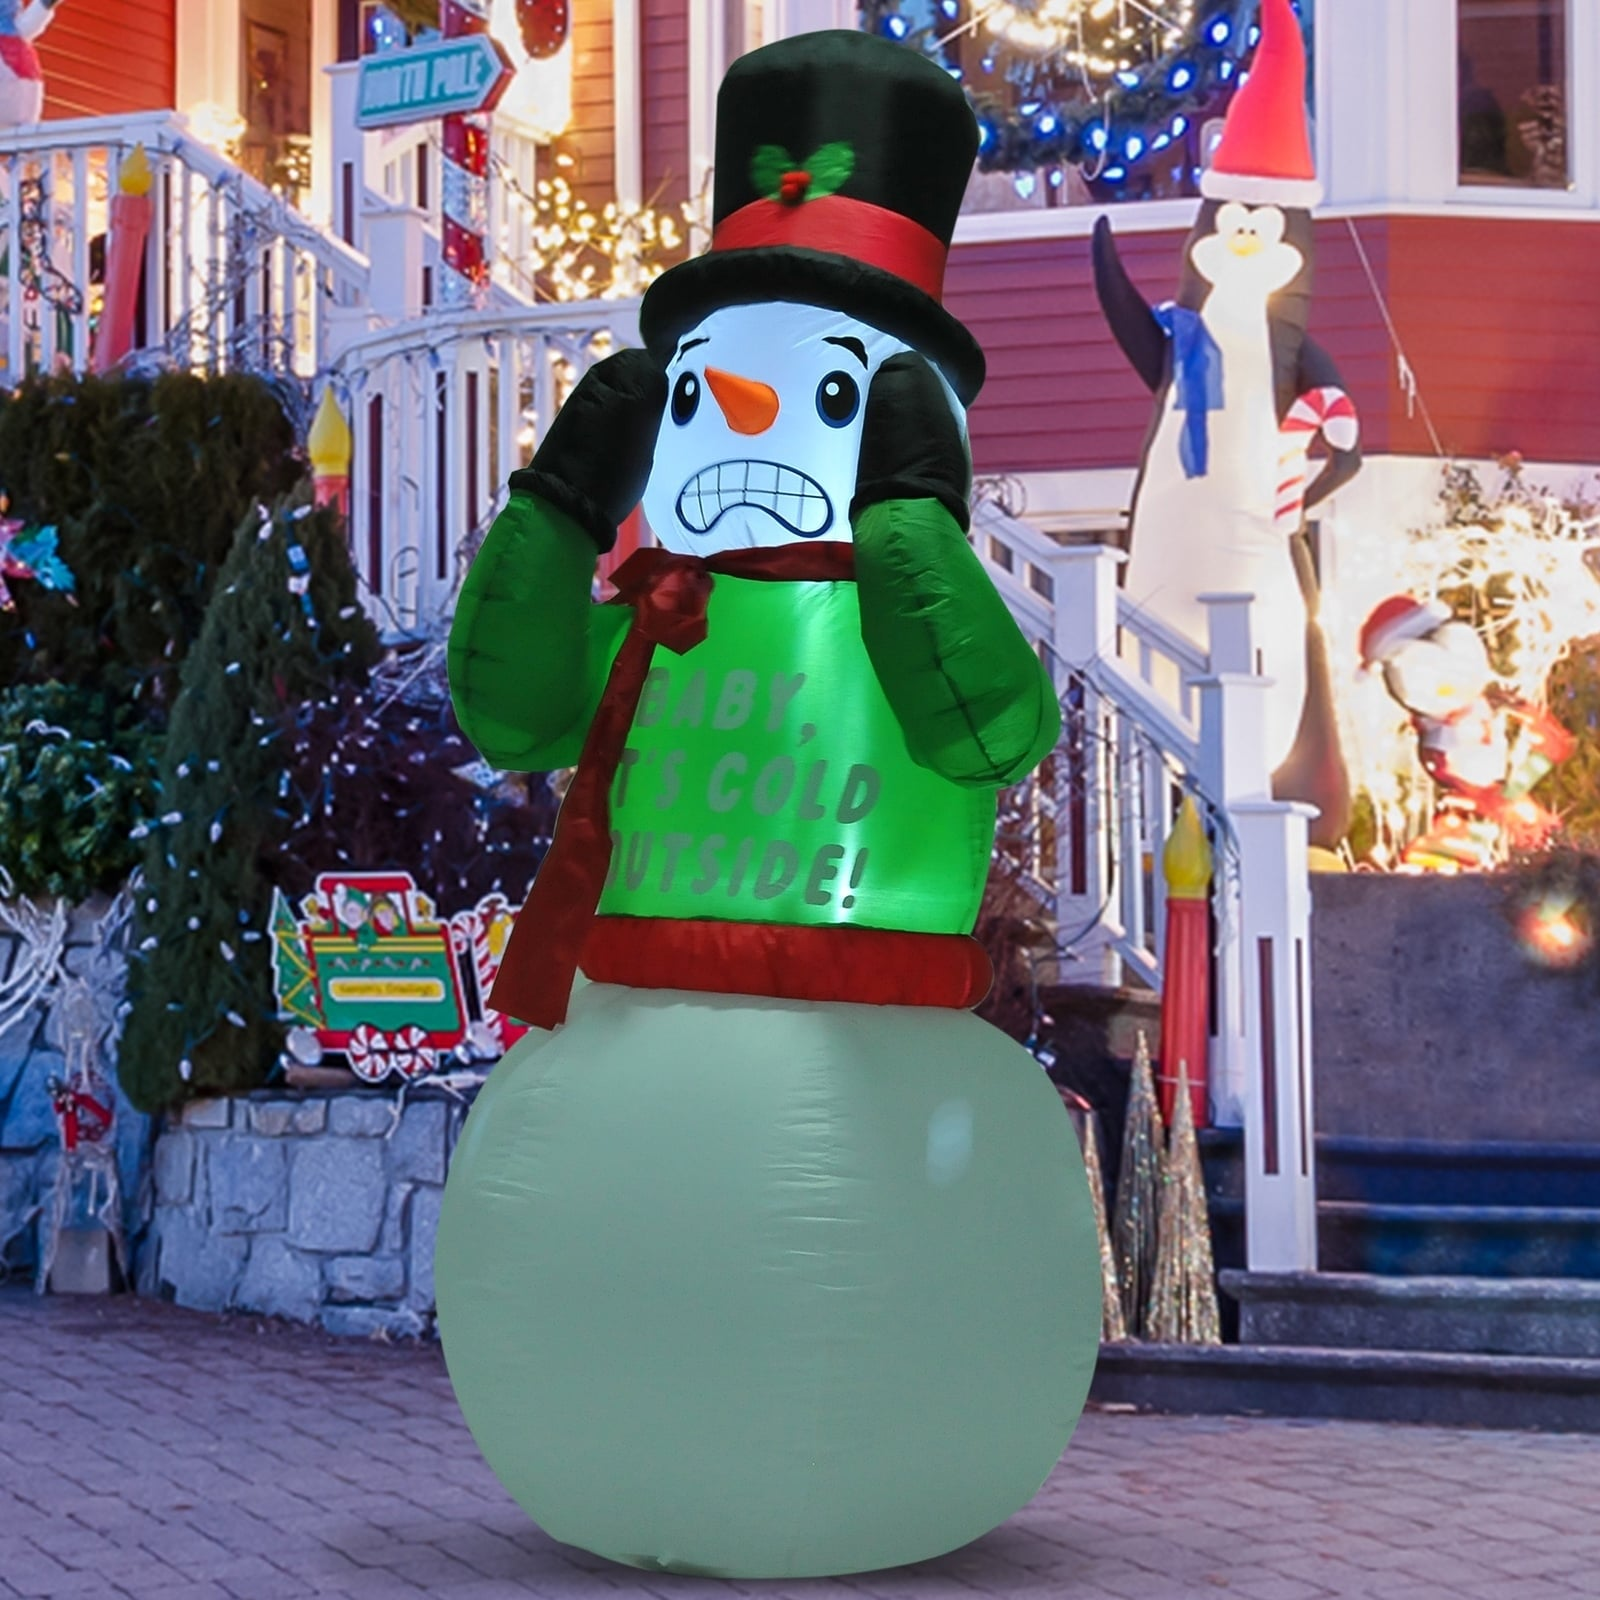 Airblown Inflatable Christmas Outdoor Lighted Yard Decoration Shivering Snowman 7 Tall Overstock 18072685